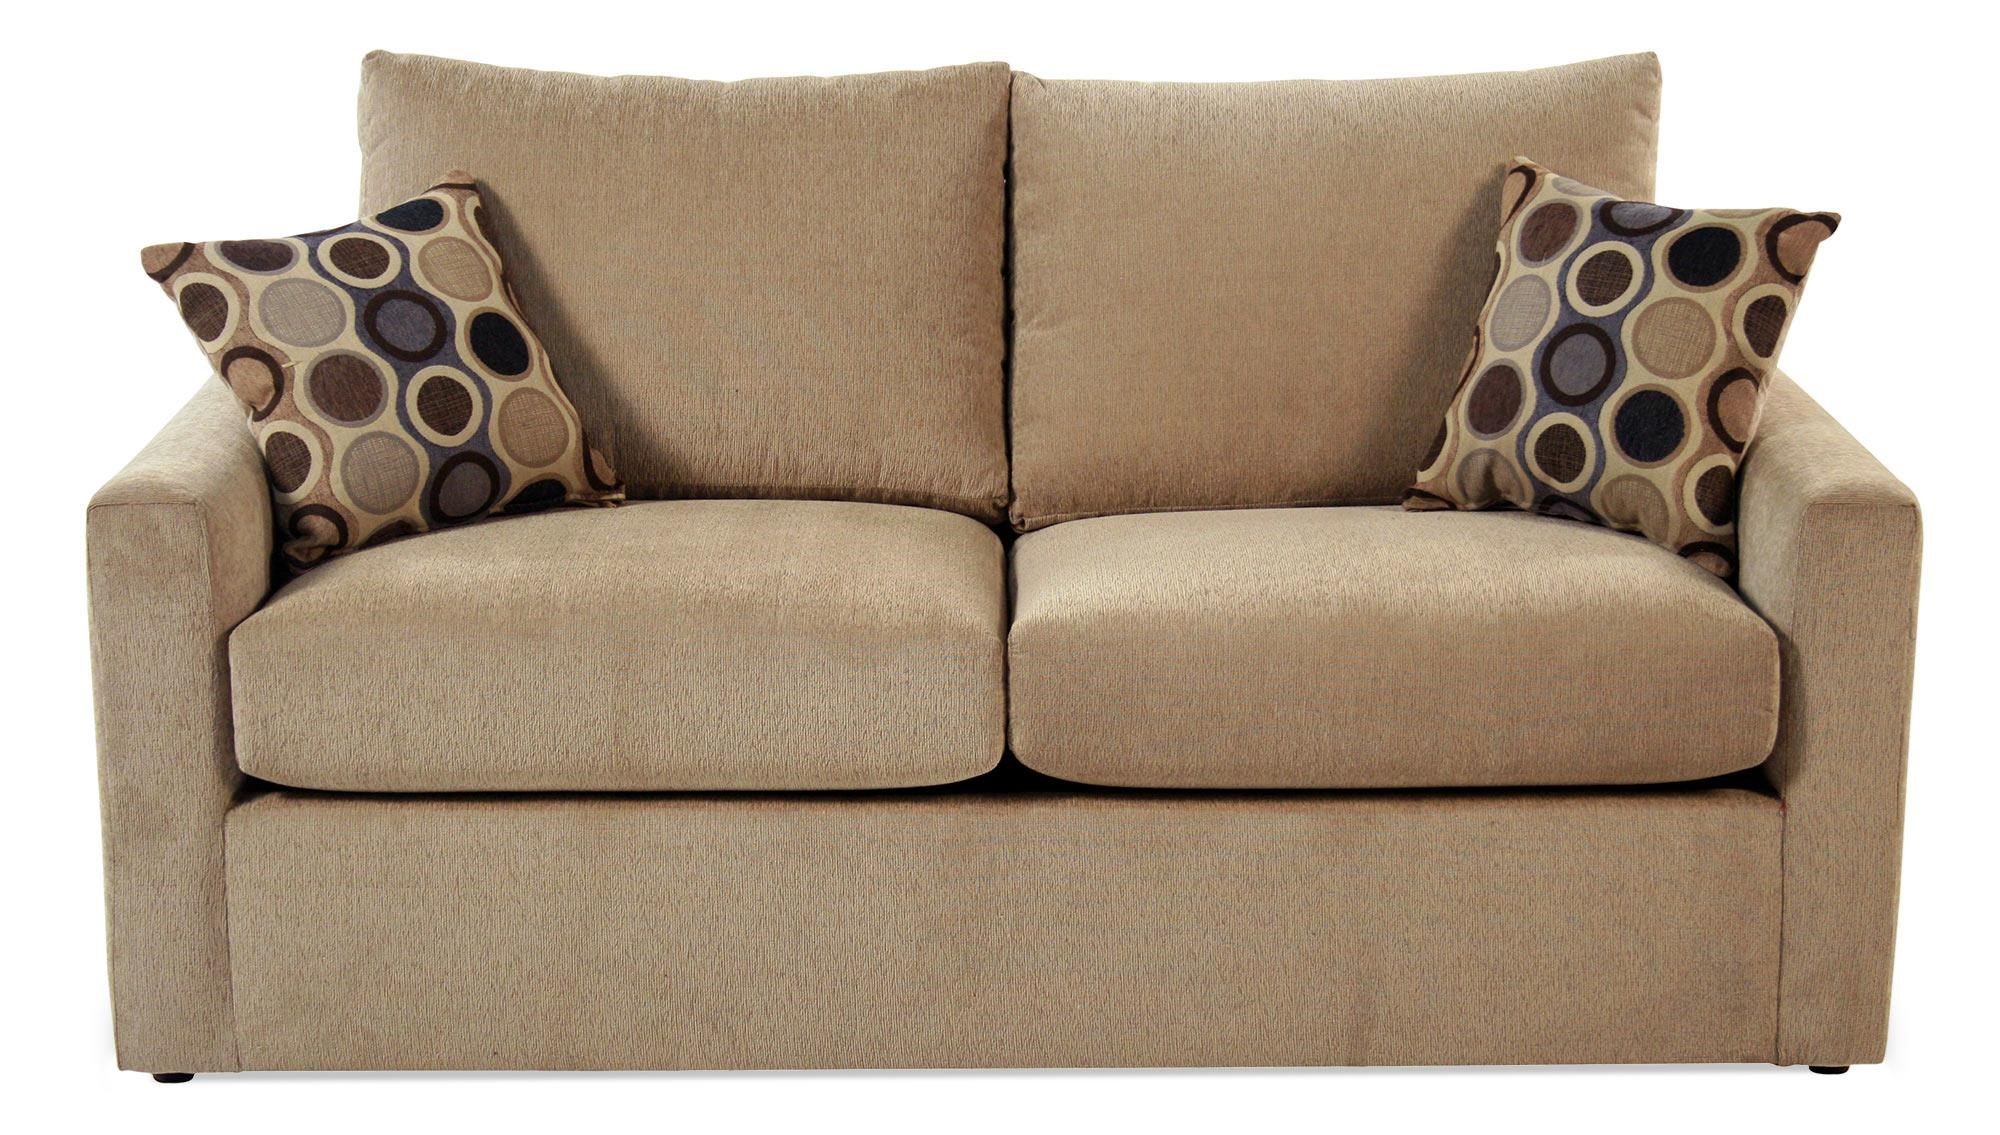 Madison Manor Sleepers Contemporary Full Sleep Sofa - Item Number: 4446